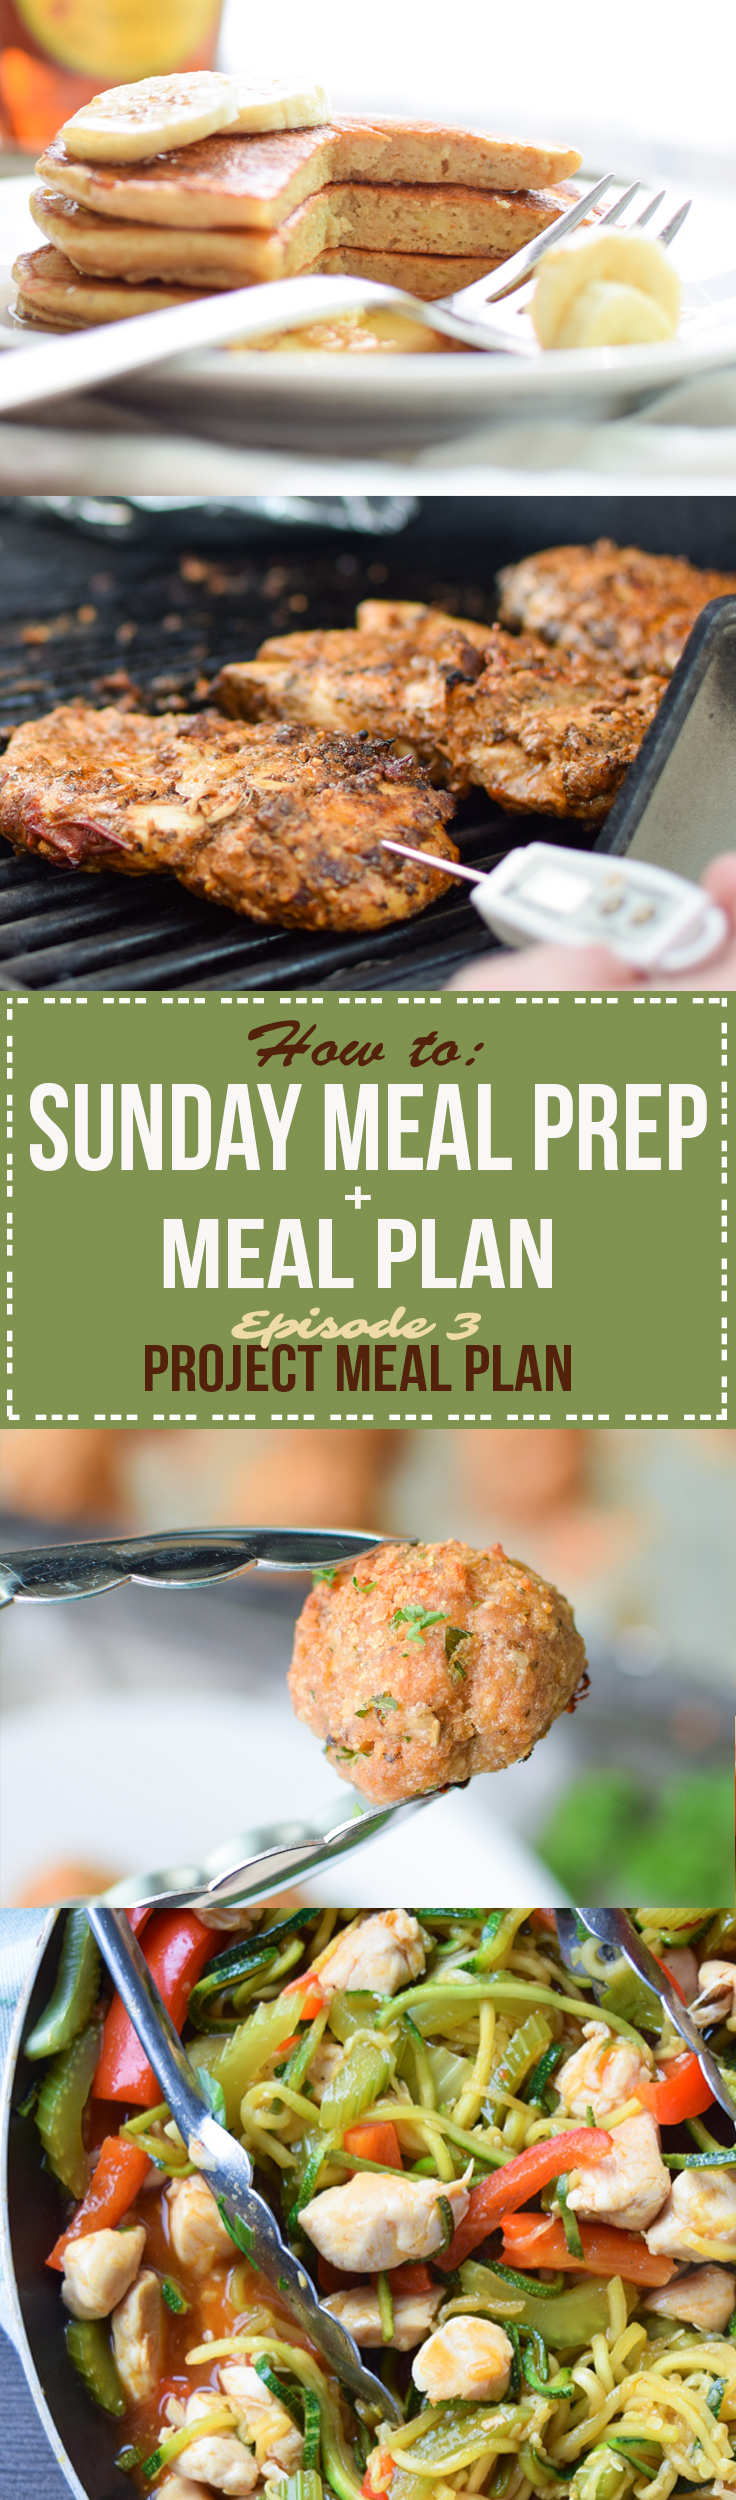 Sunday Meal Prep for August 7th - meal plan, step by step Sunday prep directions, shopping list, and daily notes for the week! - ProjectMealPlan.com